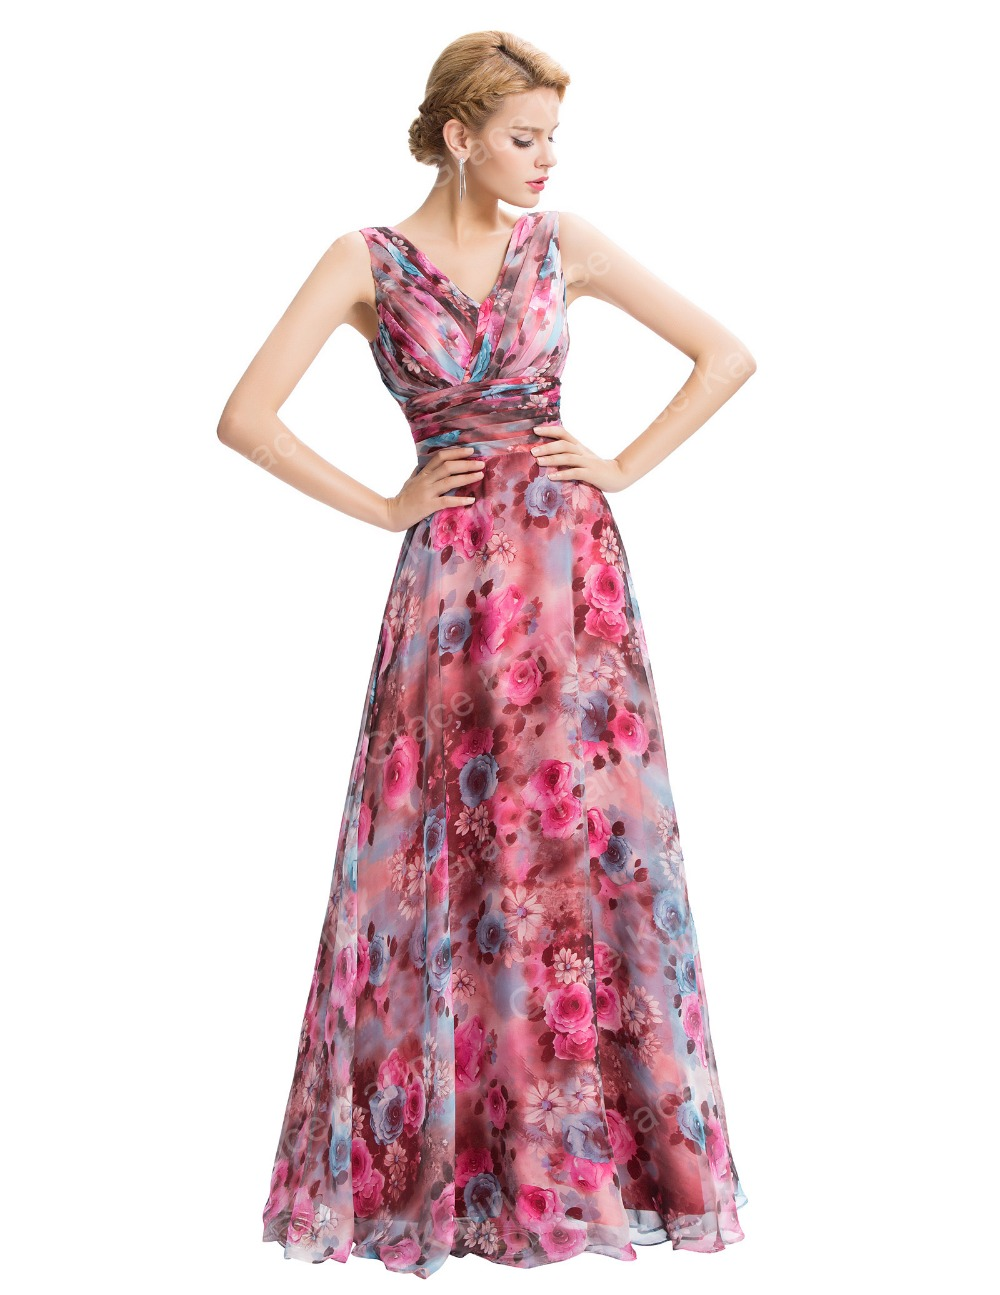 Grace karin new sleeveless v neck floral pattern chiffon long grace karin new sleeveless v neck floral pattern chiffon long bridesmaid dress gk000058 1 ombrellifo Gallery